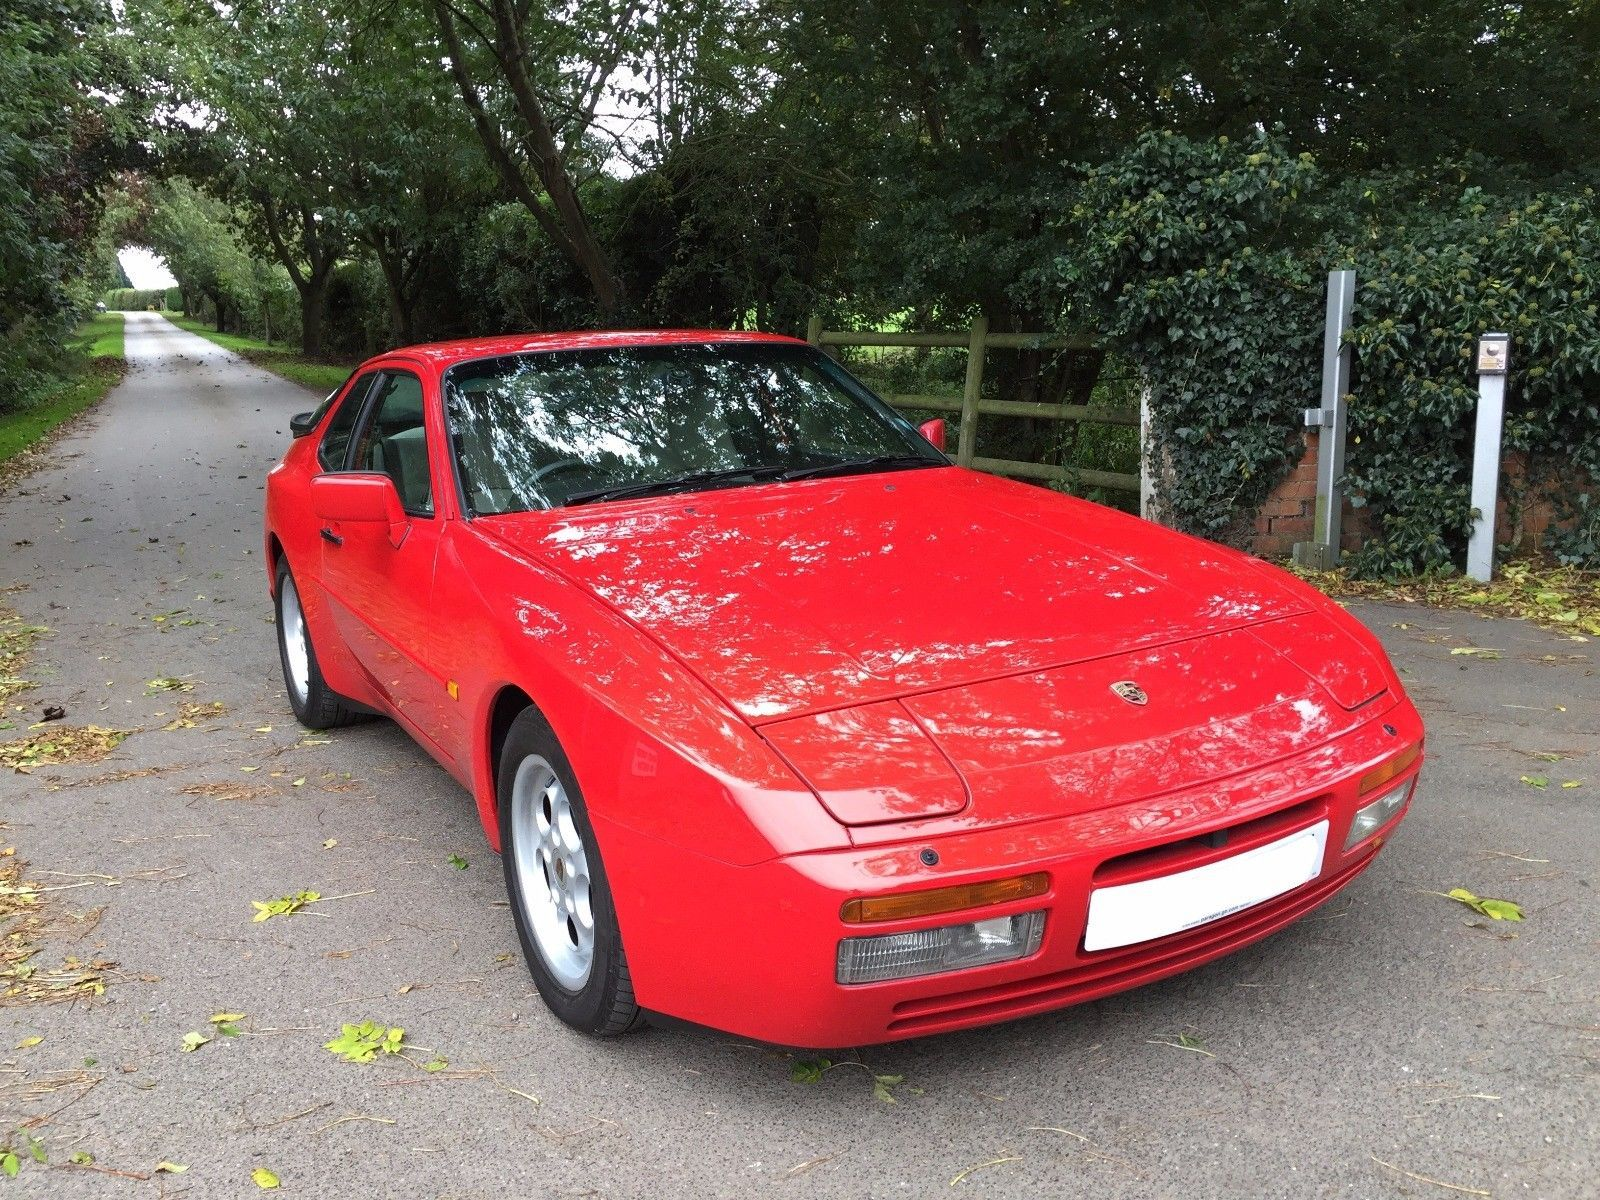 Click The Link To See More Pics And Details Of This Porsche 944 Turbo Ex Show Winner Porsche 944 Porsche Turbo Car